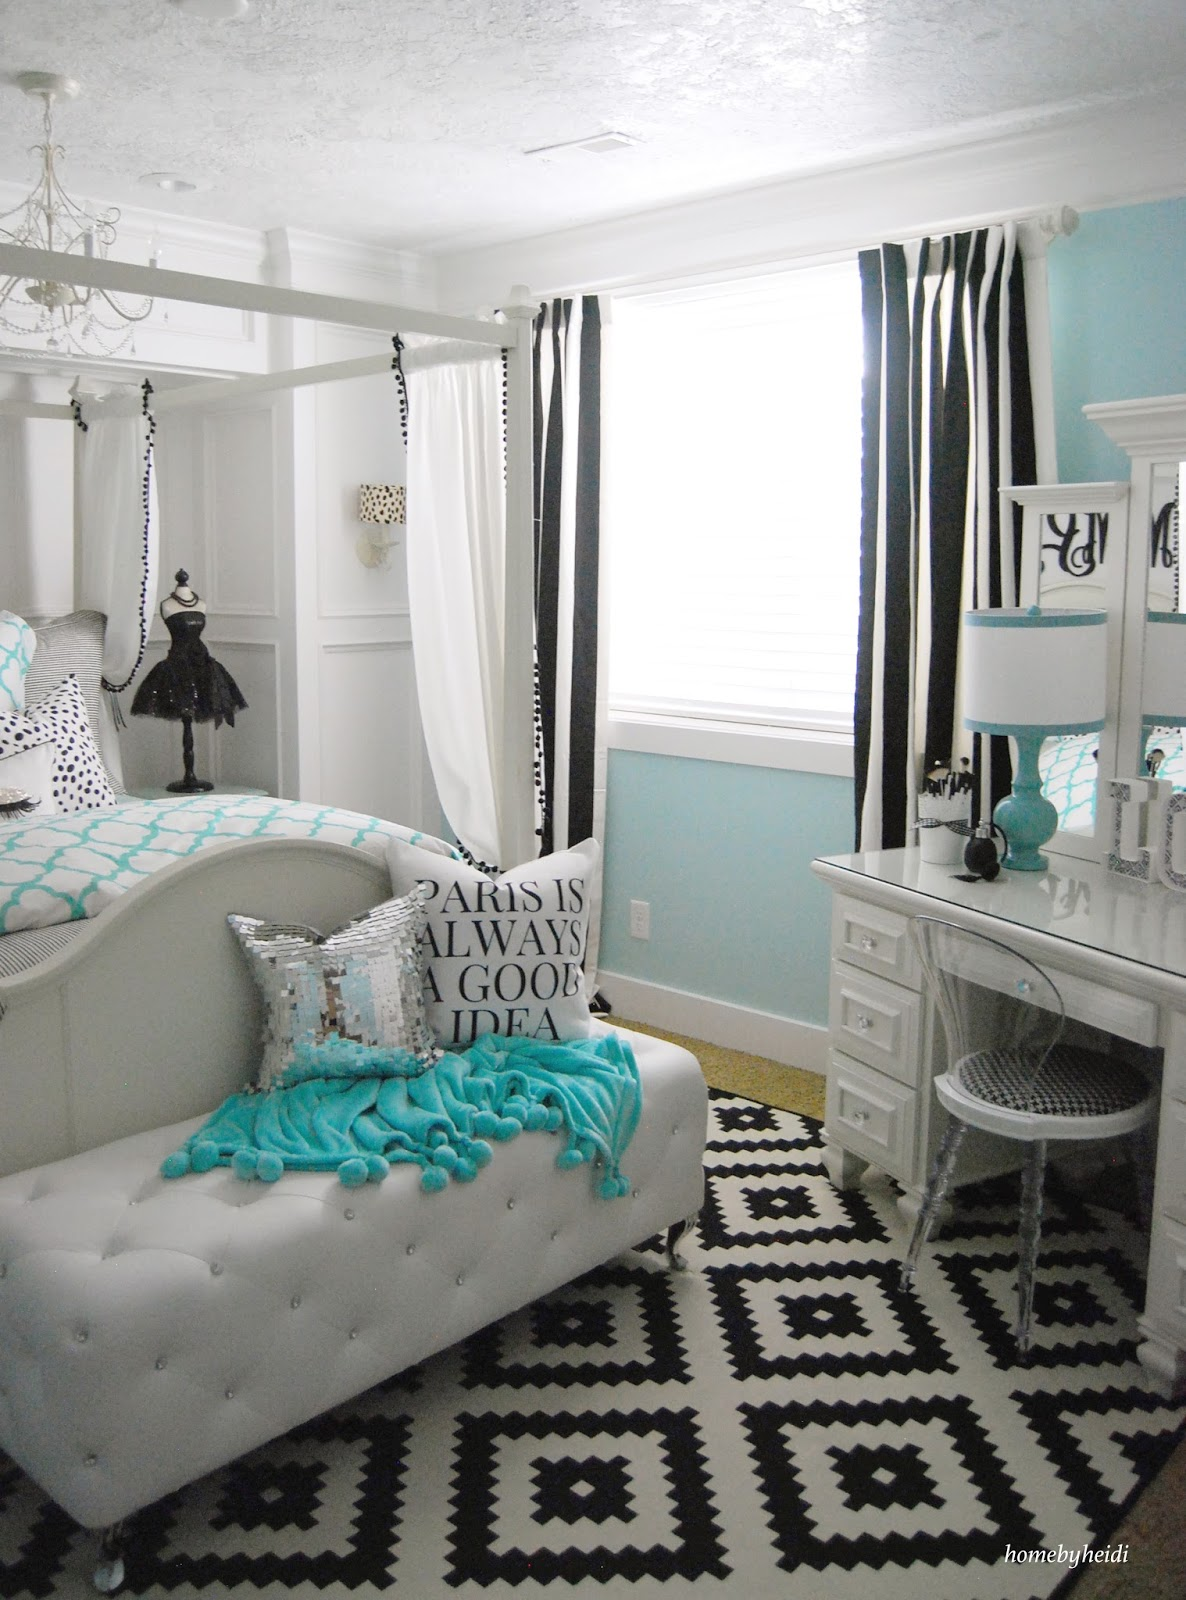 Home by heidi tiffany inspired bedroom - Teenage girl bedroom decorations ...